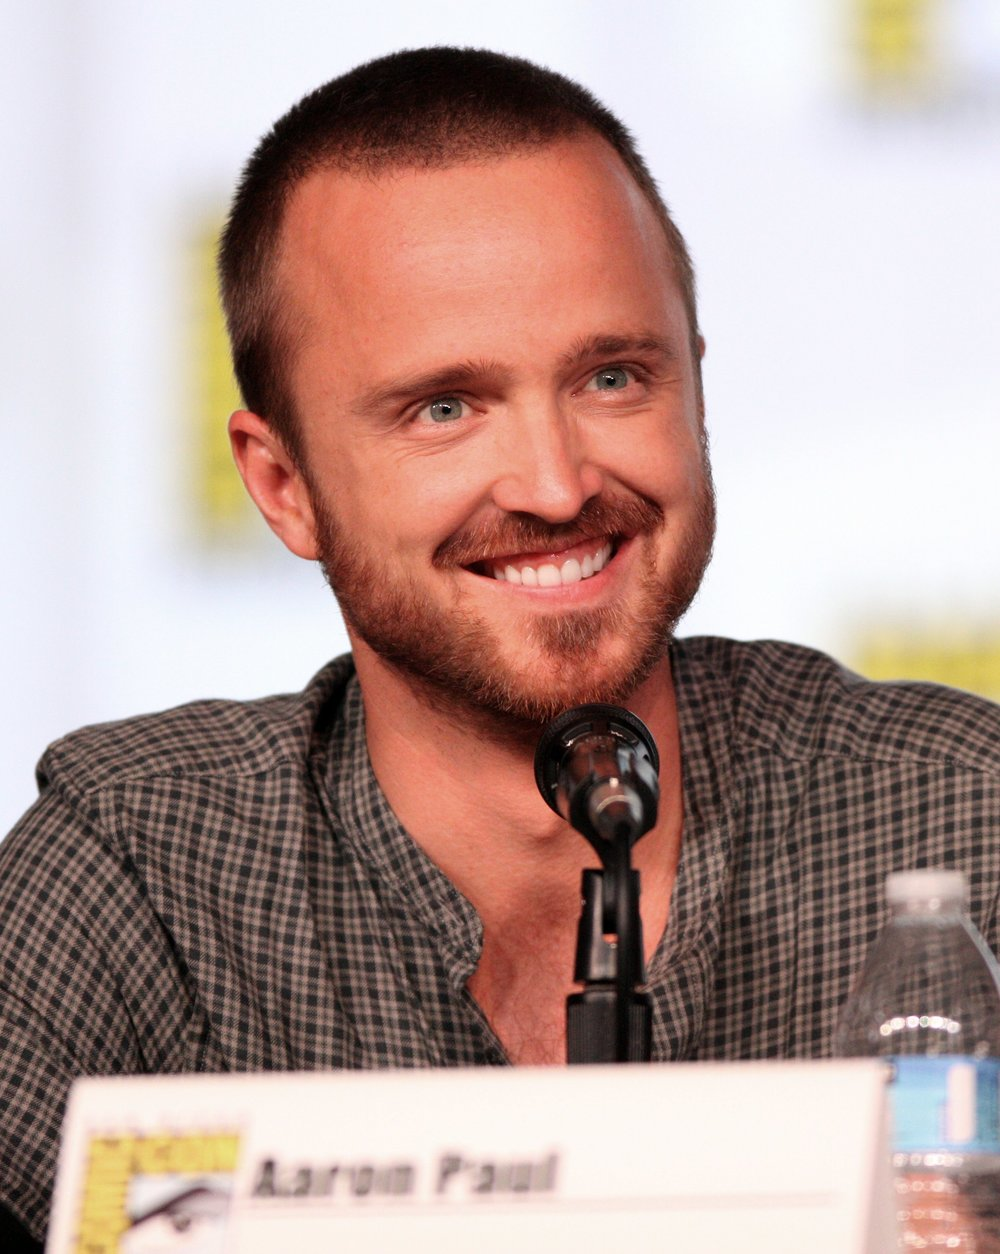 Aaron Paul, the actor who brings Todd's animated character to life, as photographed by Gary Skidmore